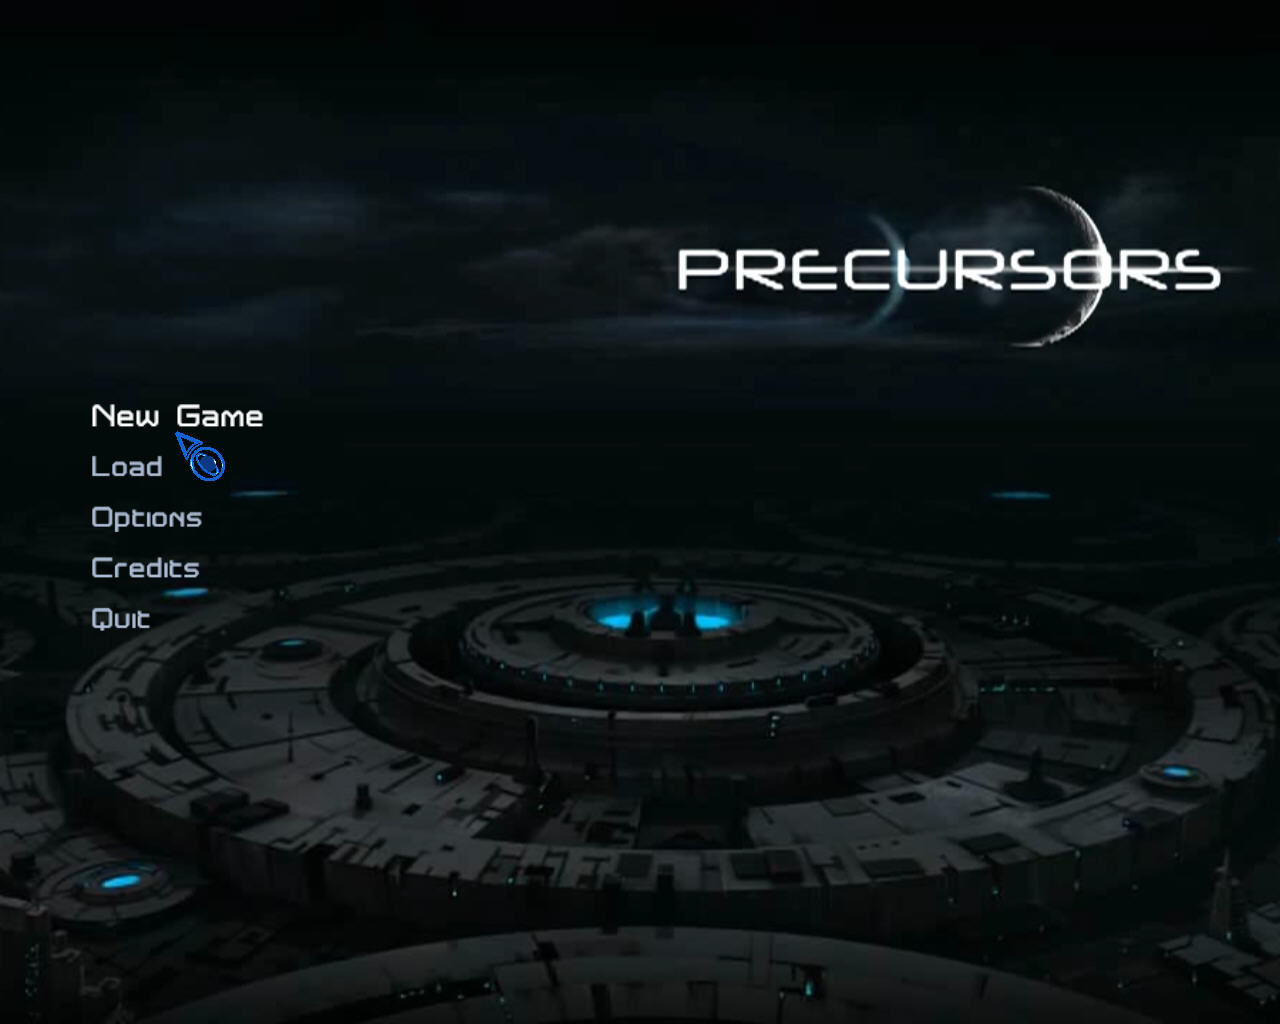 The Precursors Windows Title screen